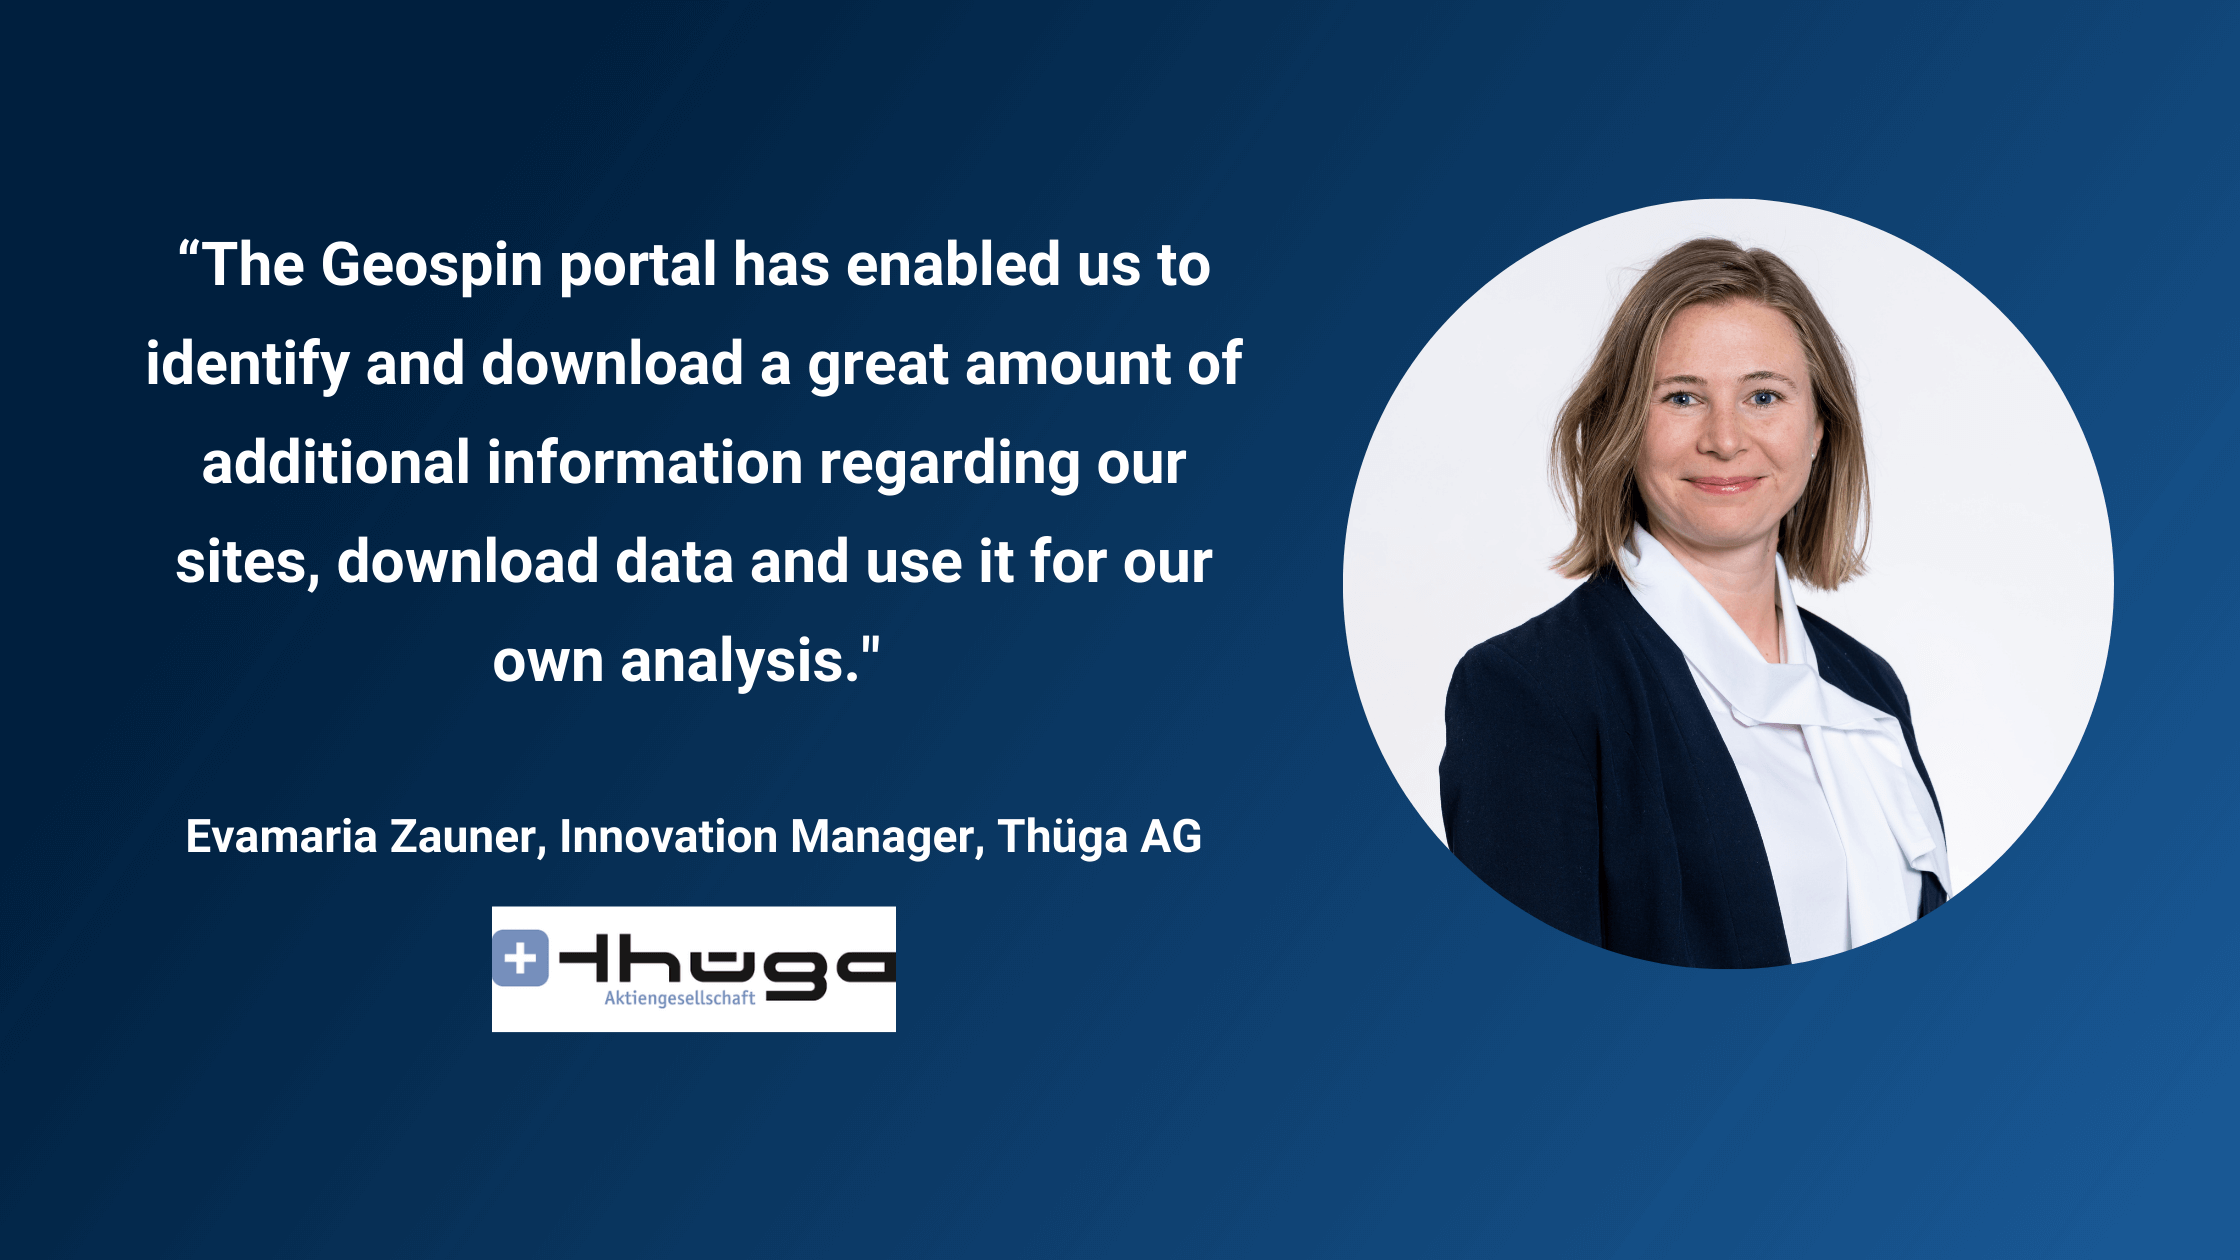 The Upload and Download function. How Thüga got straight to its own analysis with the Geospin portal. A field report.